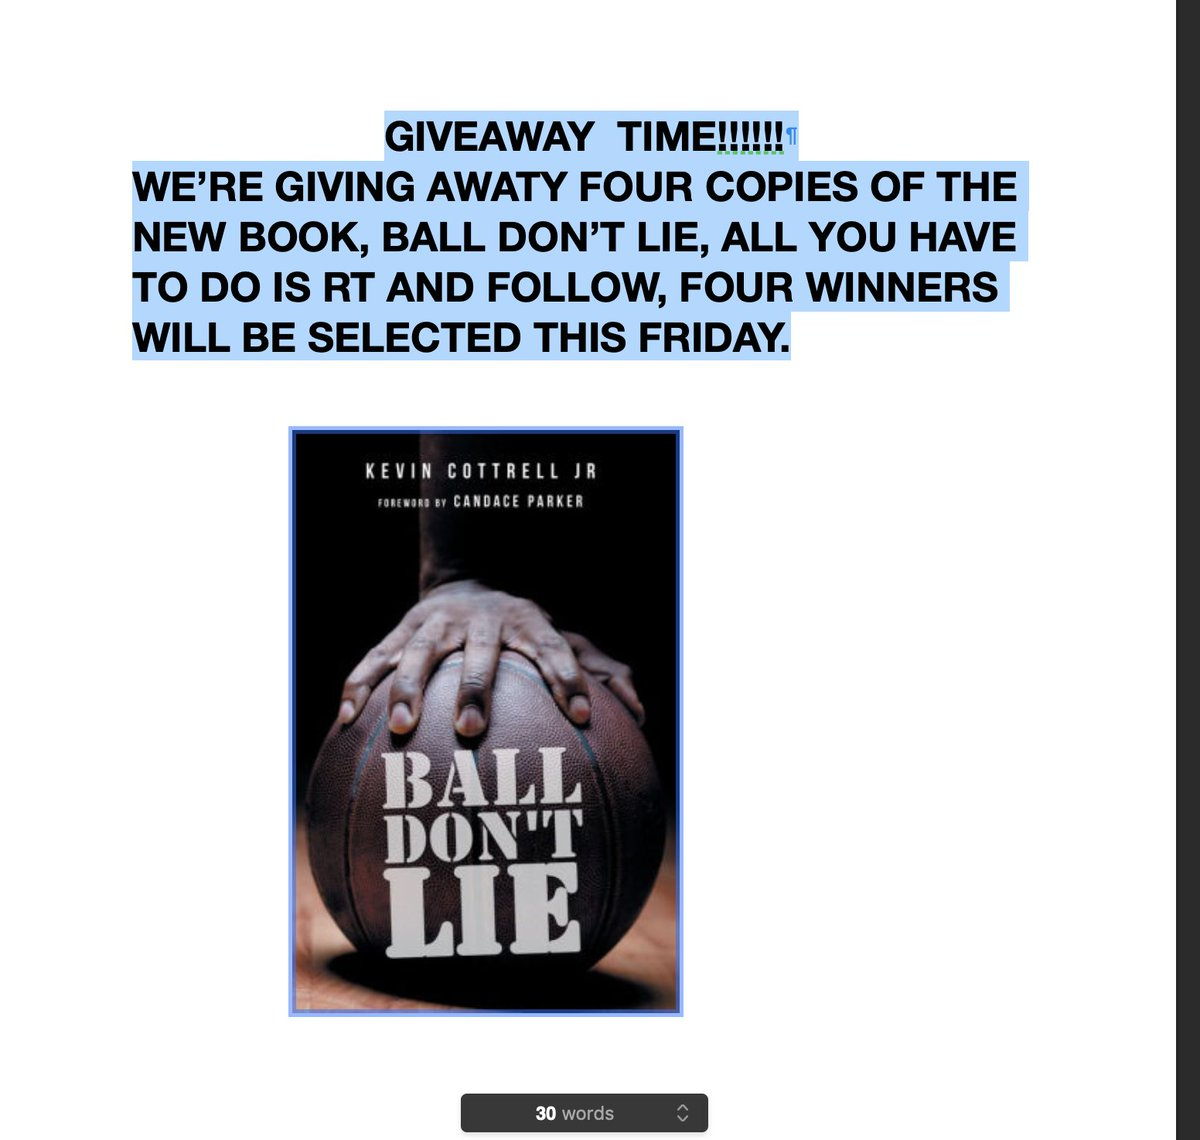 It's time for you to shoot your shot and win a copy of Ball Don't Lie written by @KCJ_Swish. All you have to do is RT and follow. Four winners will be selected this Friday https://t.co/DSHq0upAIR